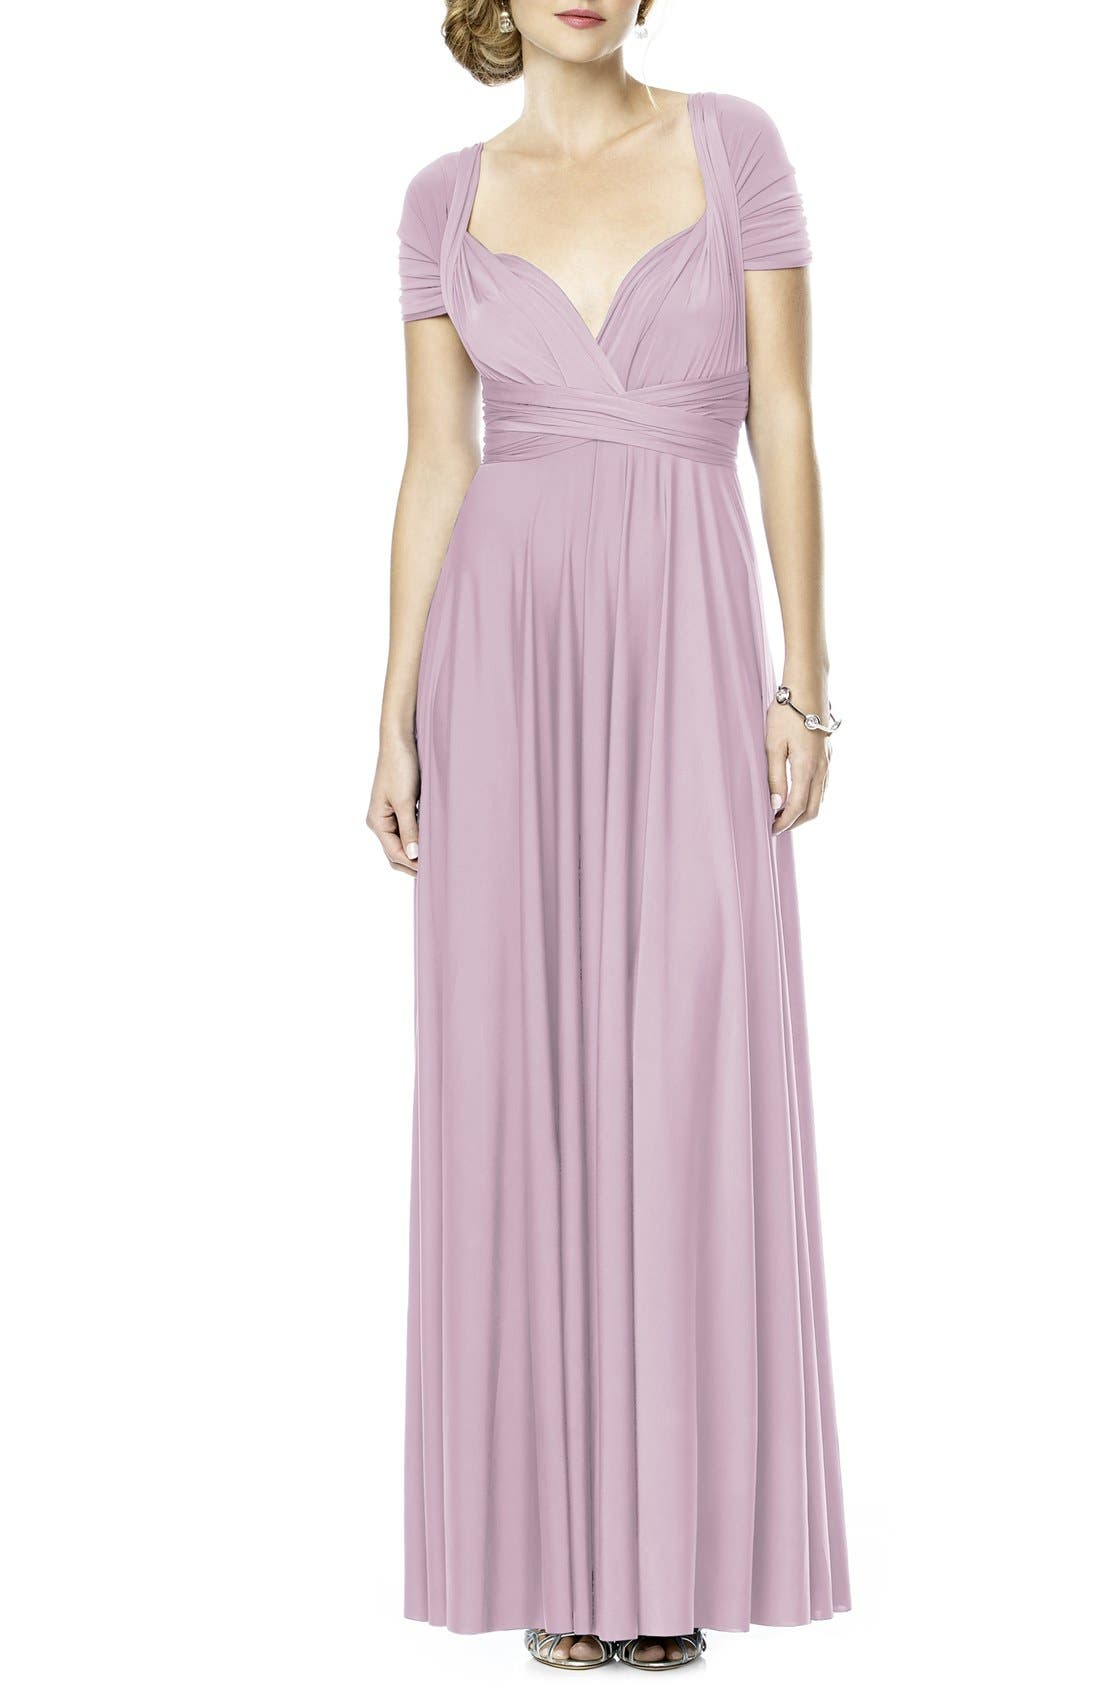 Dessy collection bridesmaid wedding party dresses nordstrom dessy collection convertible wrap tie surplice jersey gown ombrellifo Choice Image